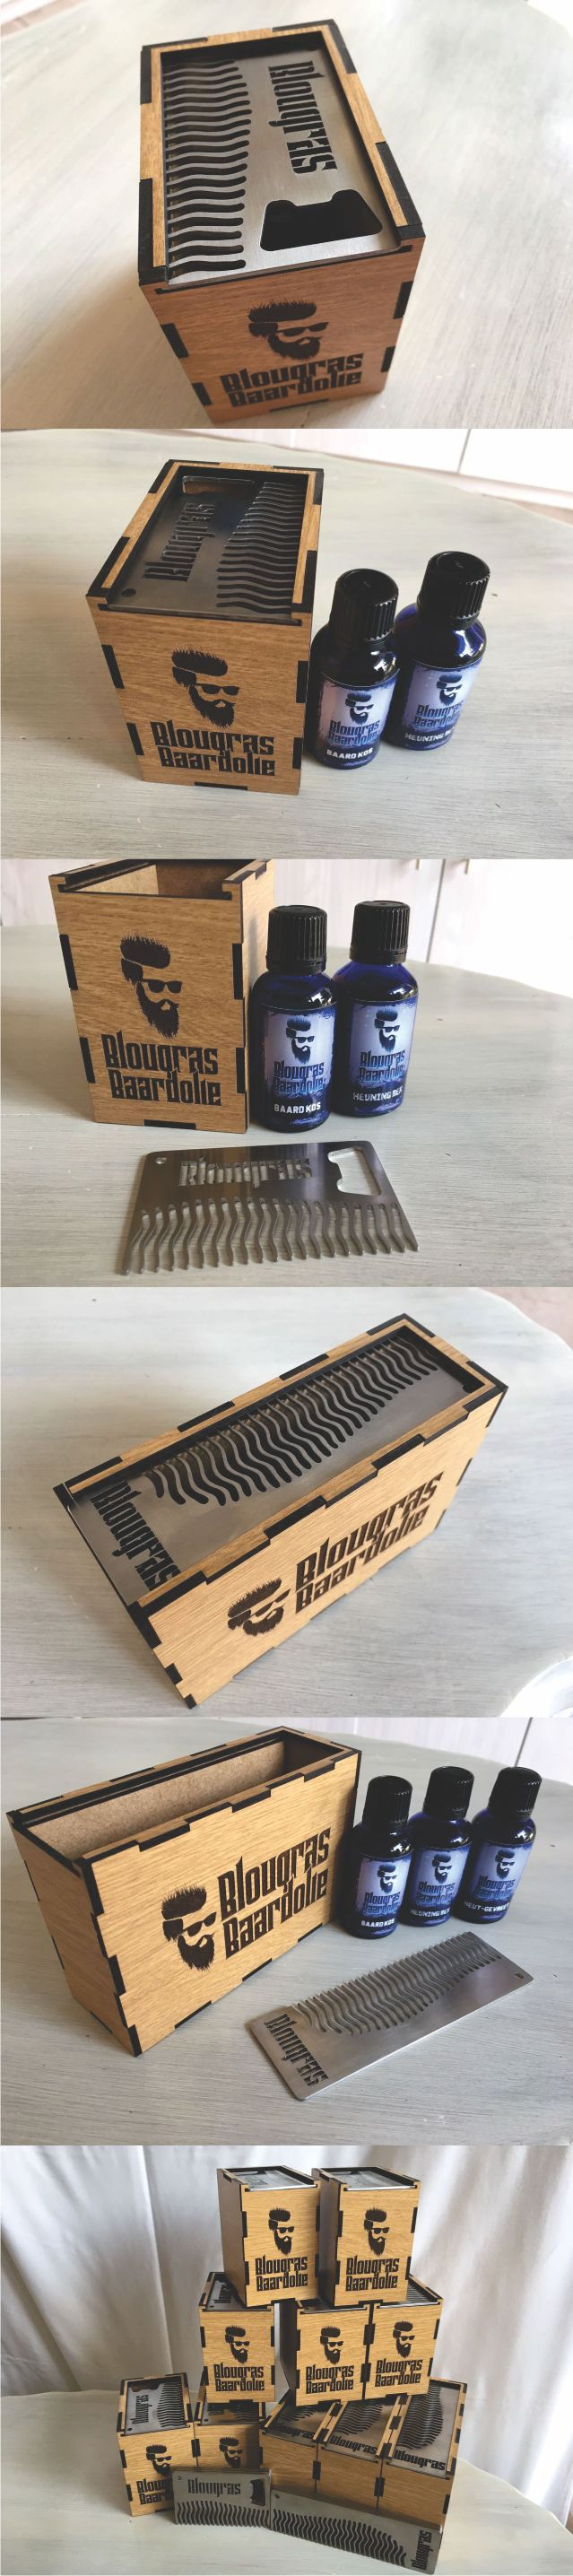 Our gift box sets are here!!     Credit Card Stainless Steel #BeardComb + 2 x 30ml #BeardOils of your choice + Wooden #Gift Box = R400     Long Stainless Steel #Beard #Comb + 3 x 30ml of your choice + Wooden Gift Box = R580     (prices exclude courier/delivery charges)     LIMITED STOCK. CALL NOW!! 084 545 4016